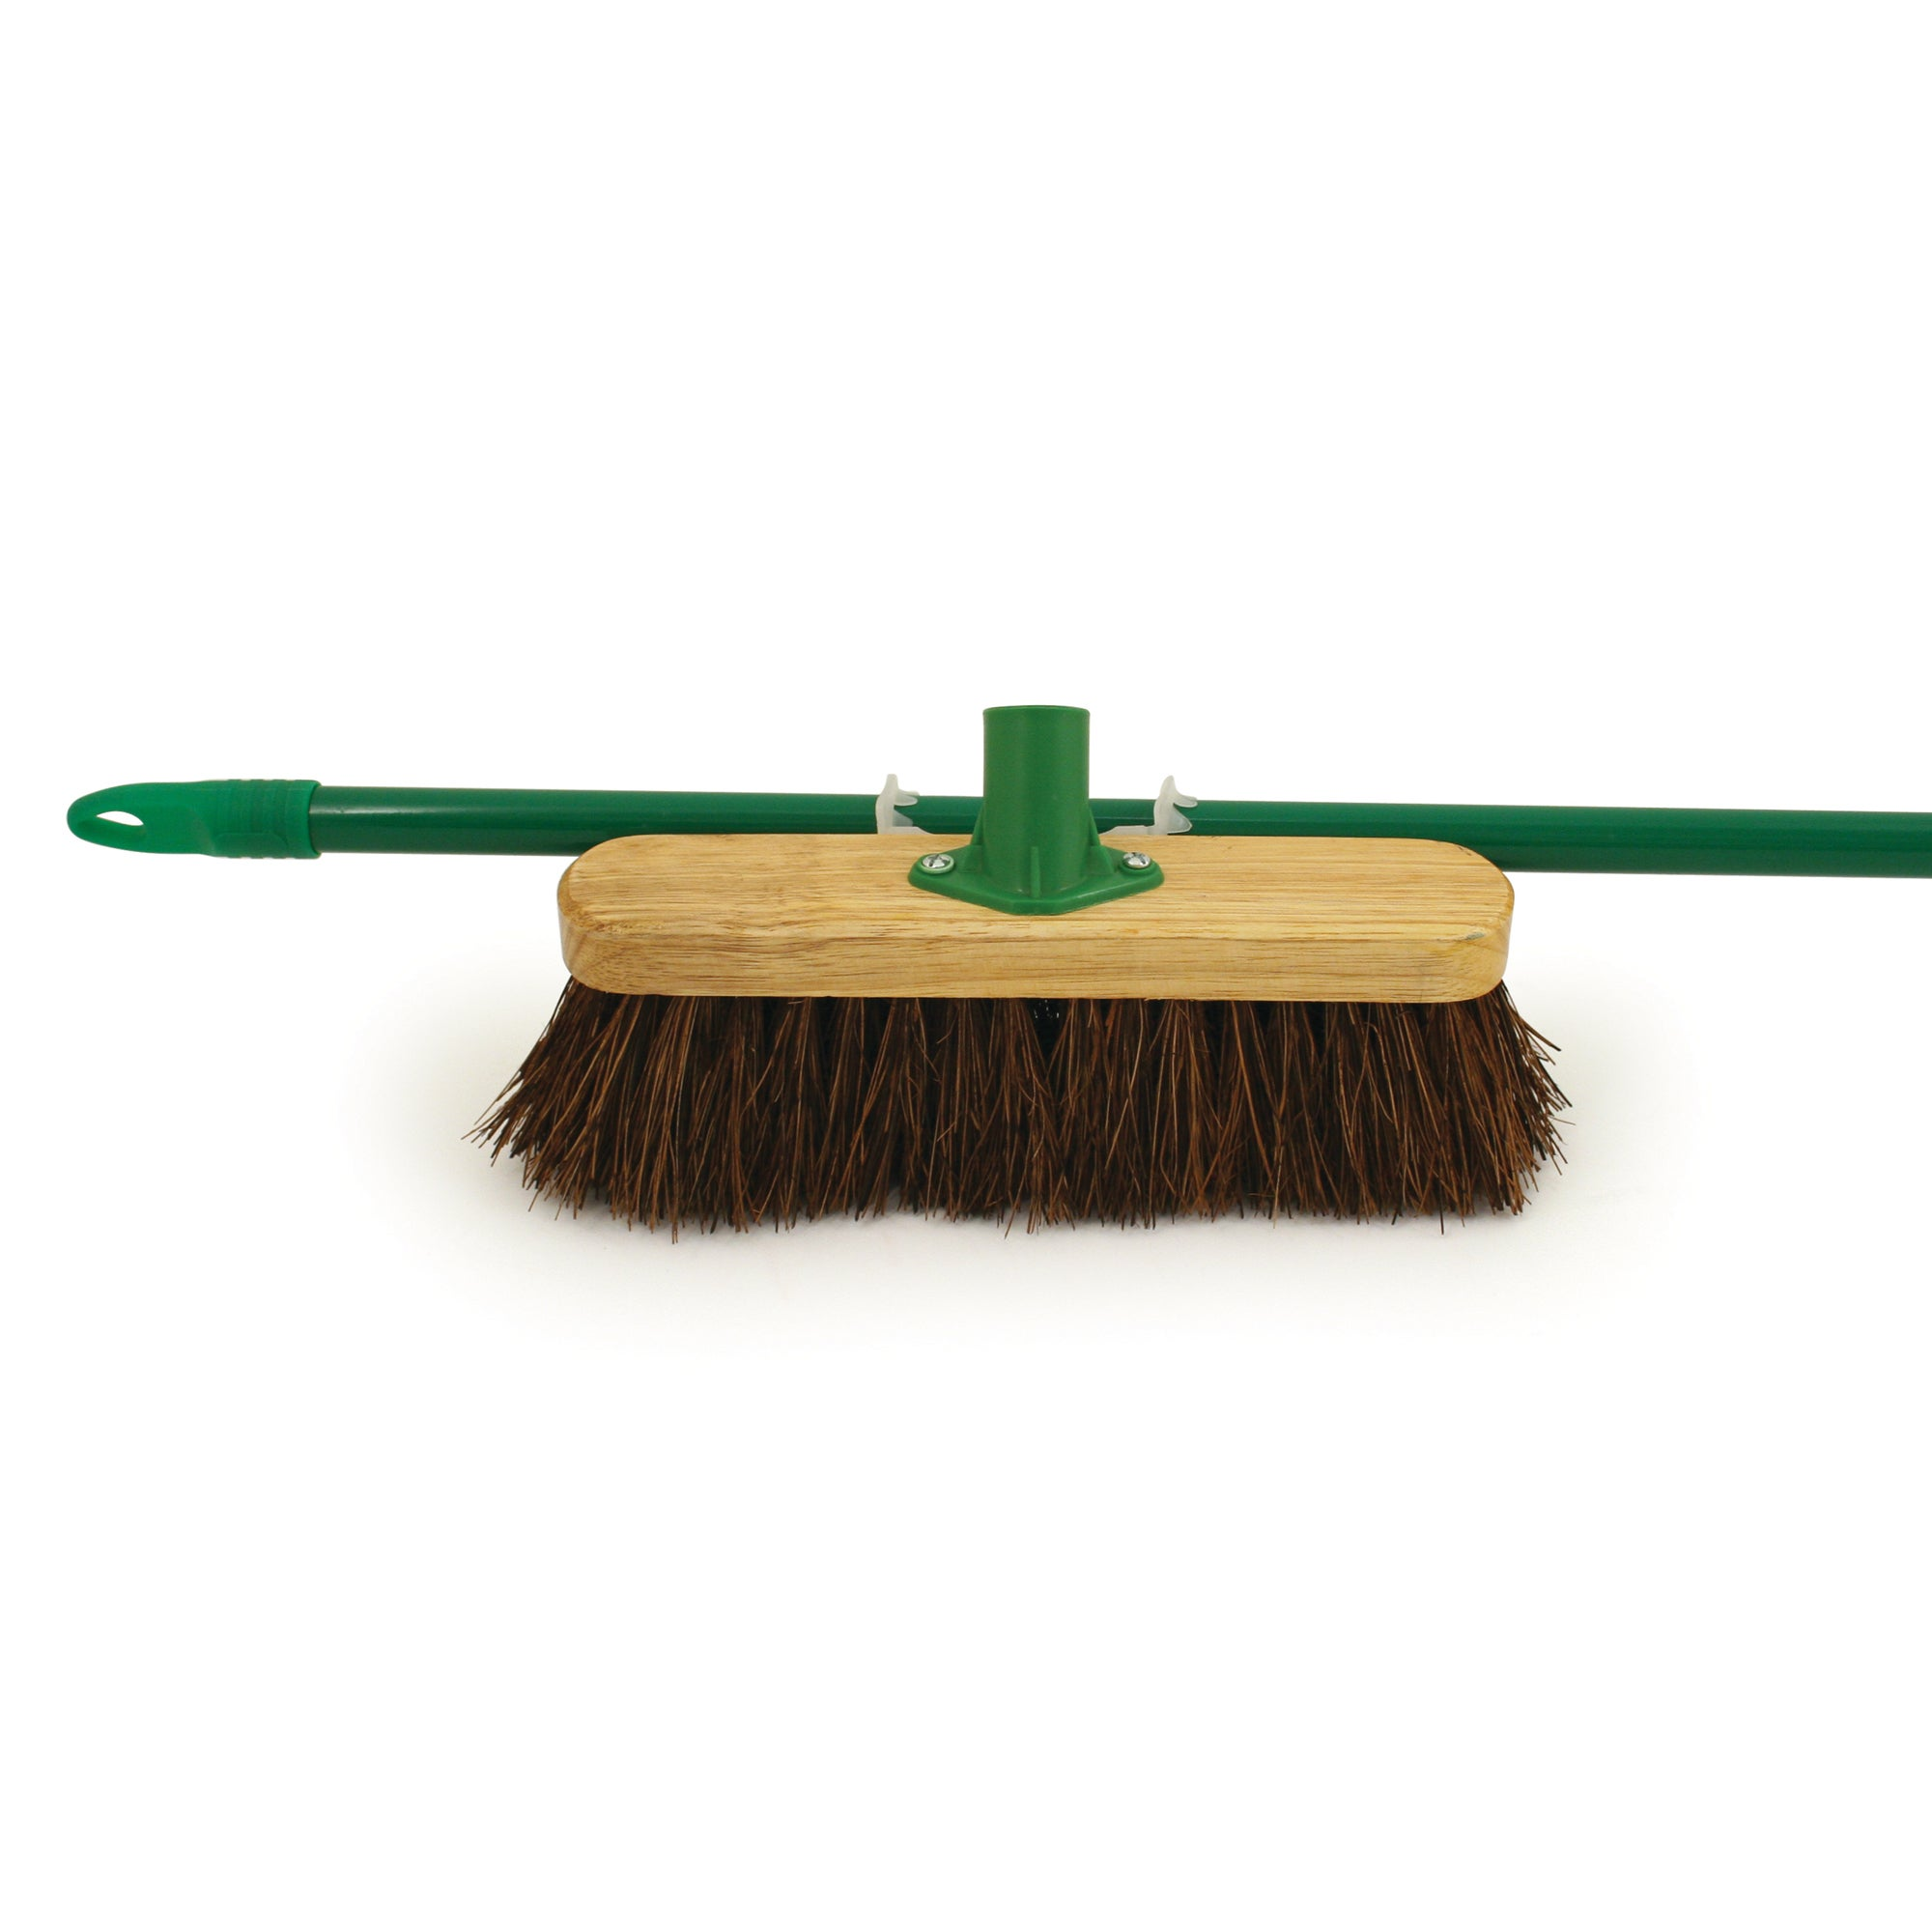 Varnished Bassine Broom